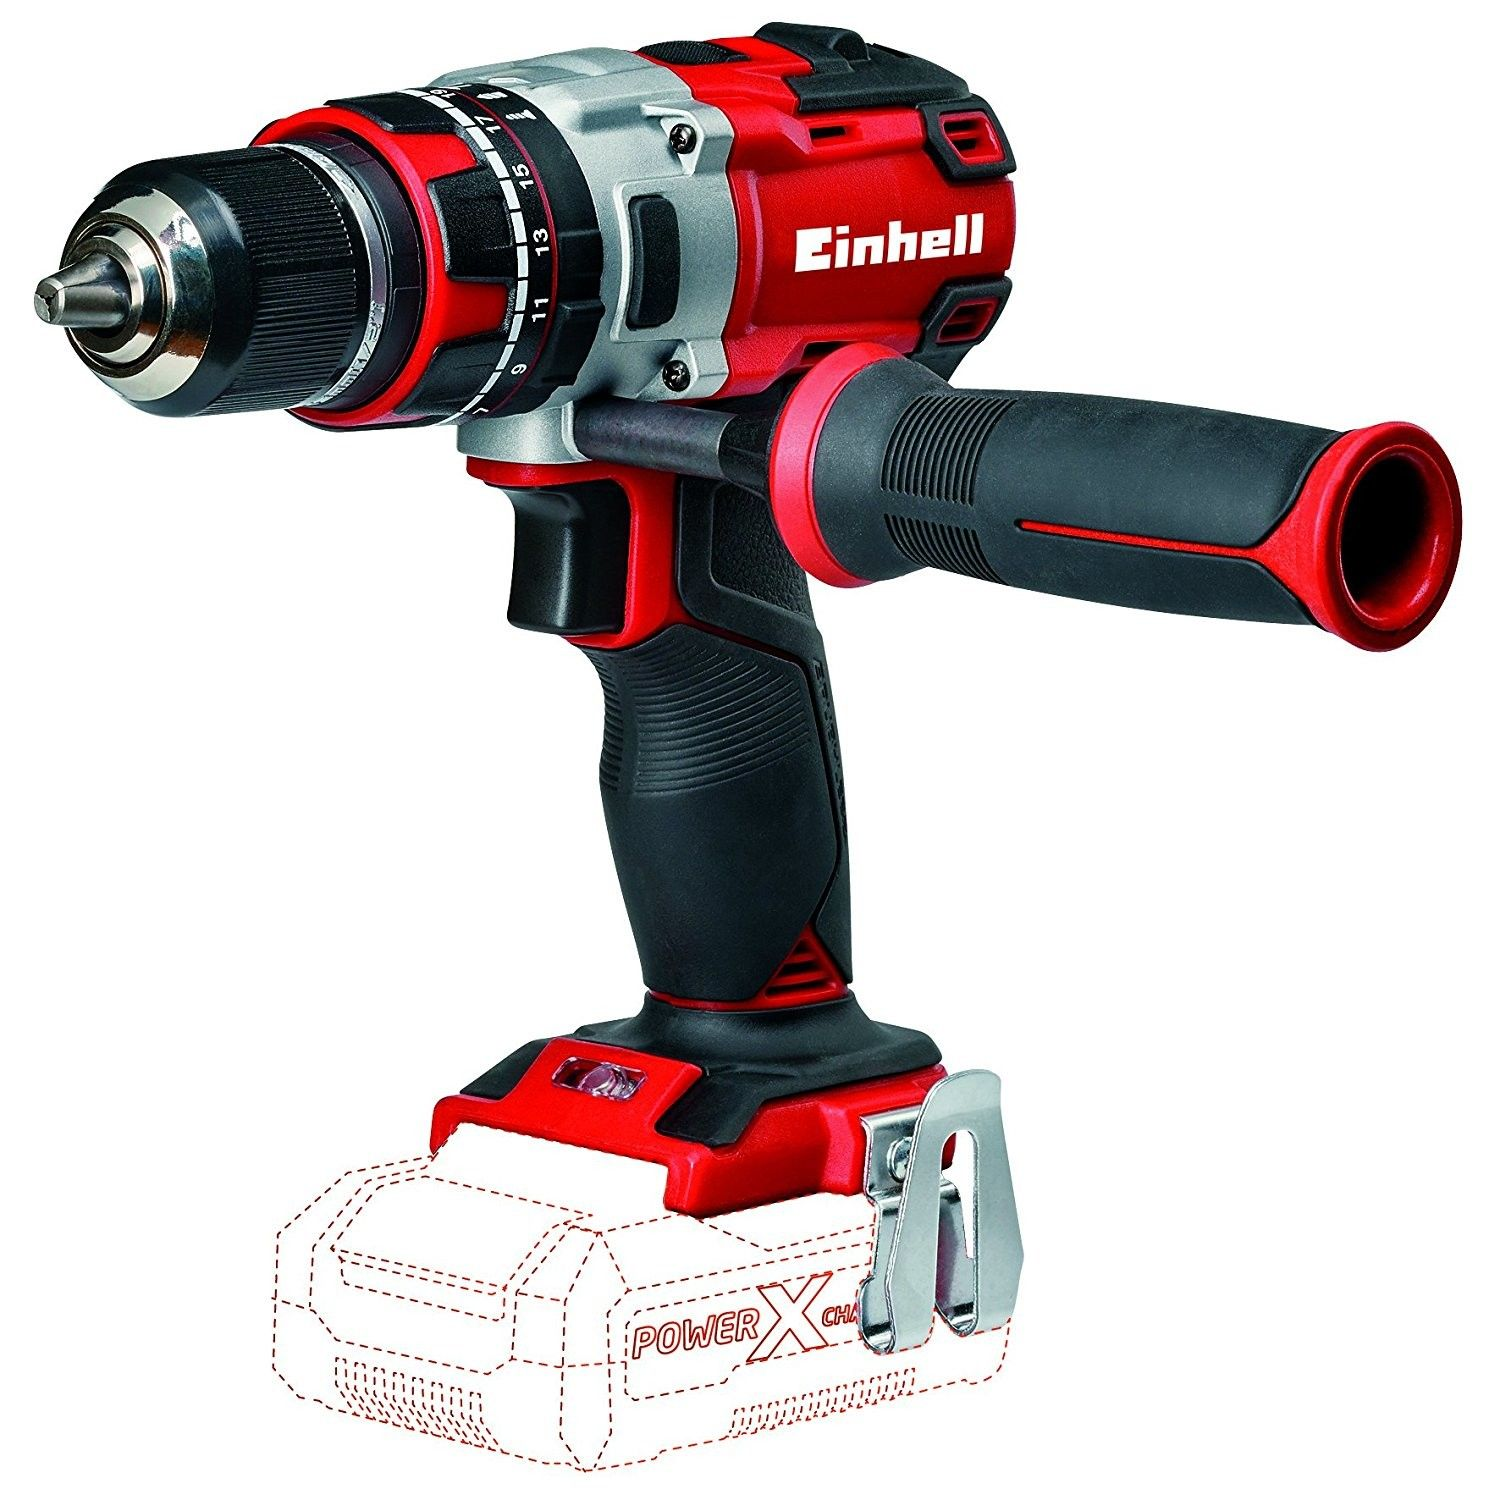 Trapano a Percussione TE-CD 18 Power X-Change EINHELL 4513860